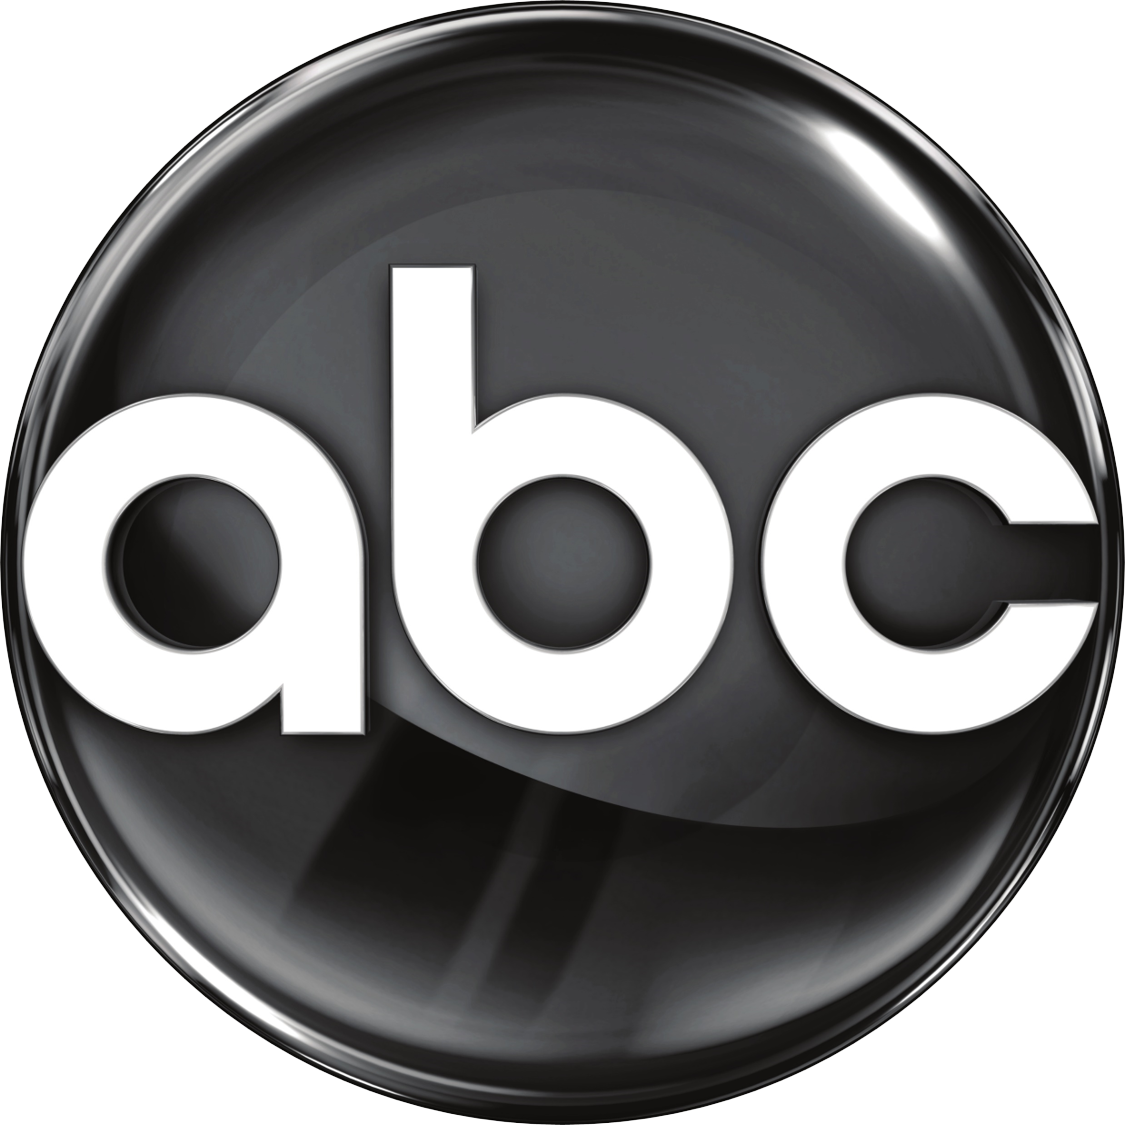 Zairmail has been seen on ABC affiliates online